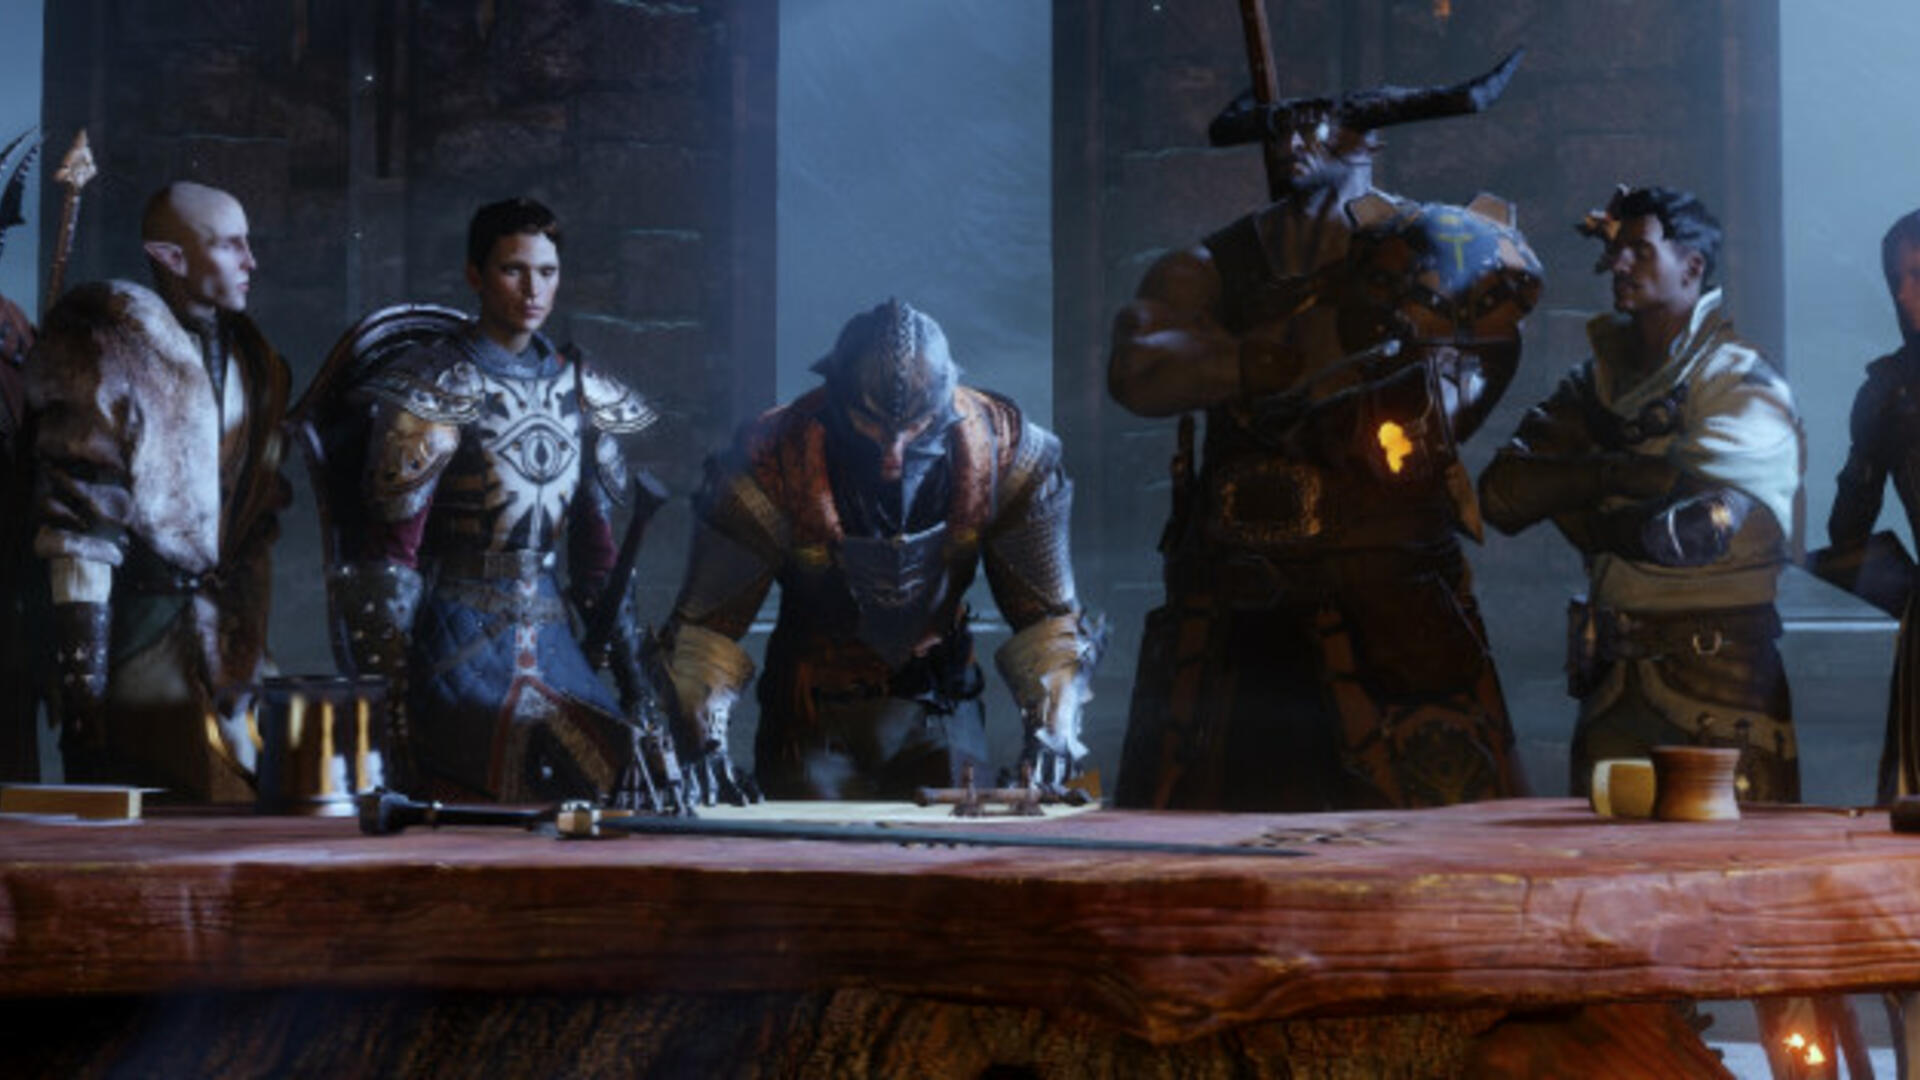 """Dragon Age 4 is Confirmed and May Have """"Live Elements"""""""